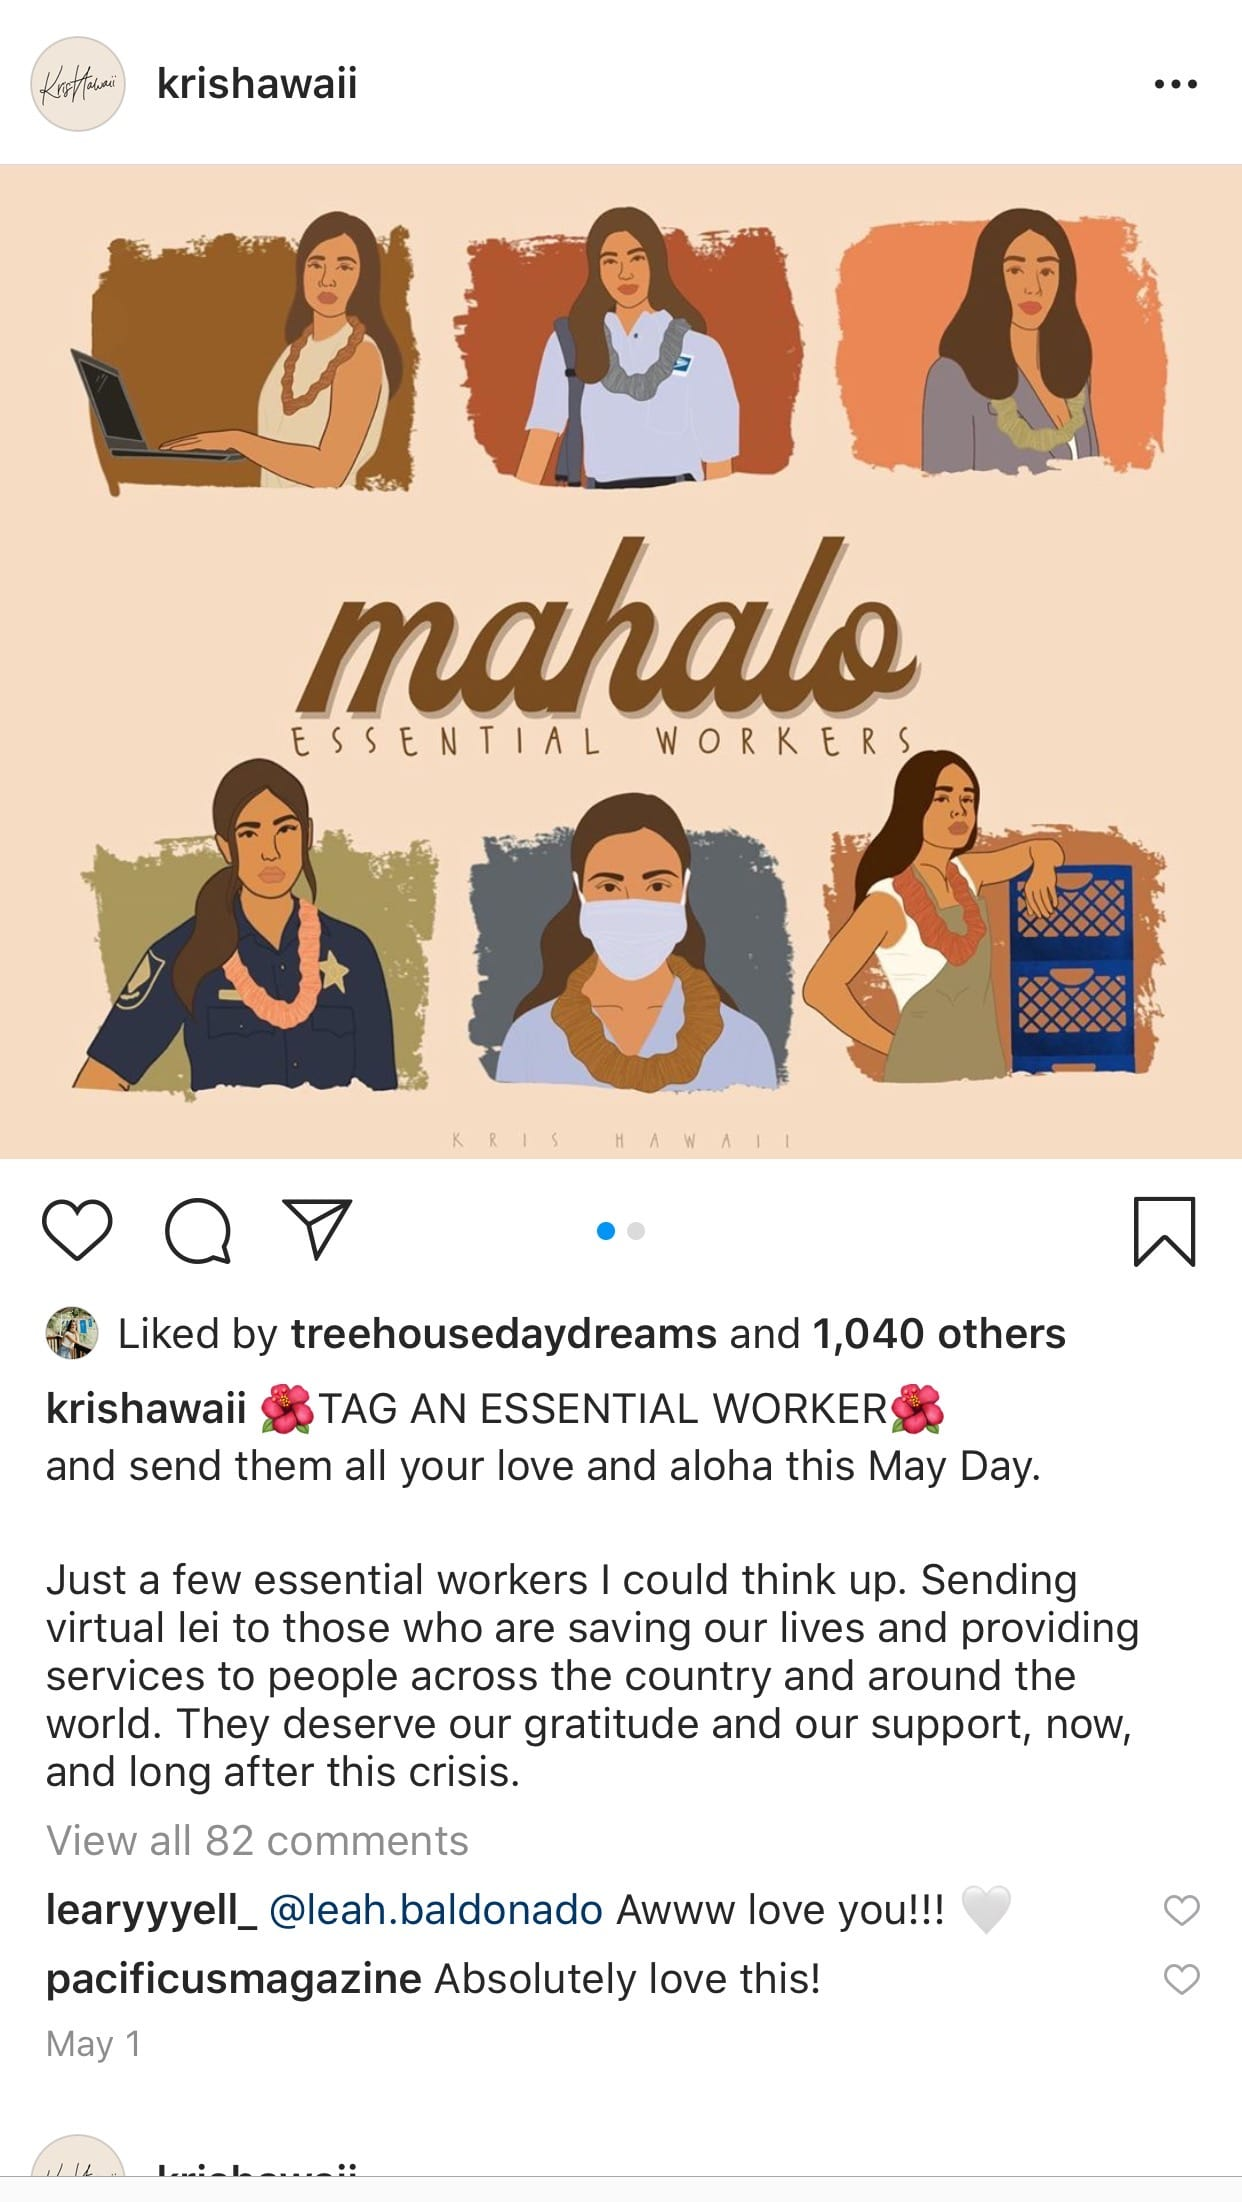 artwork by kris hawaii expressing thanks to essential workers